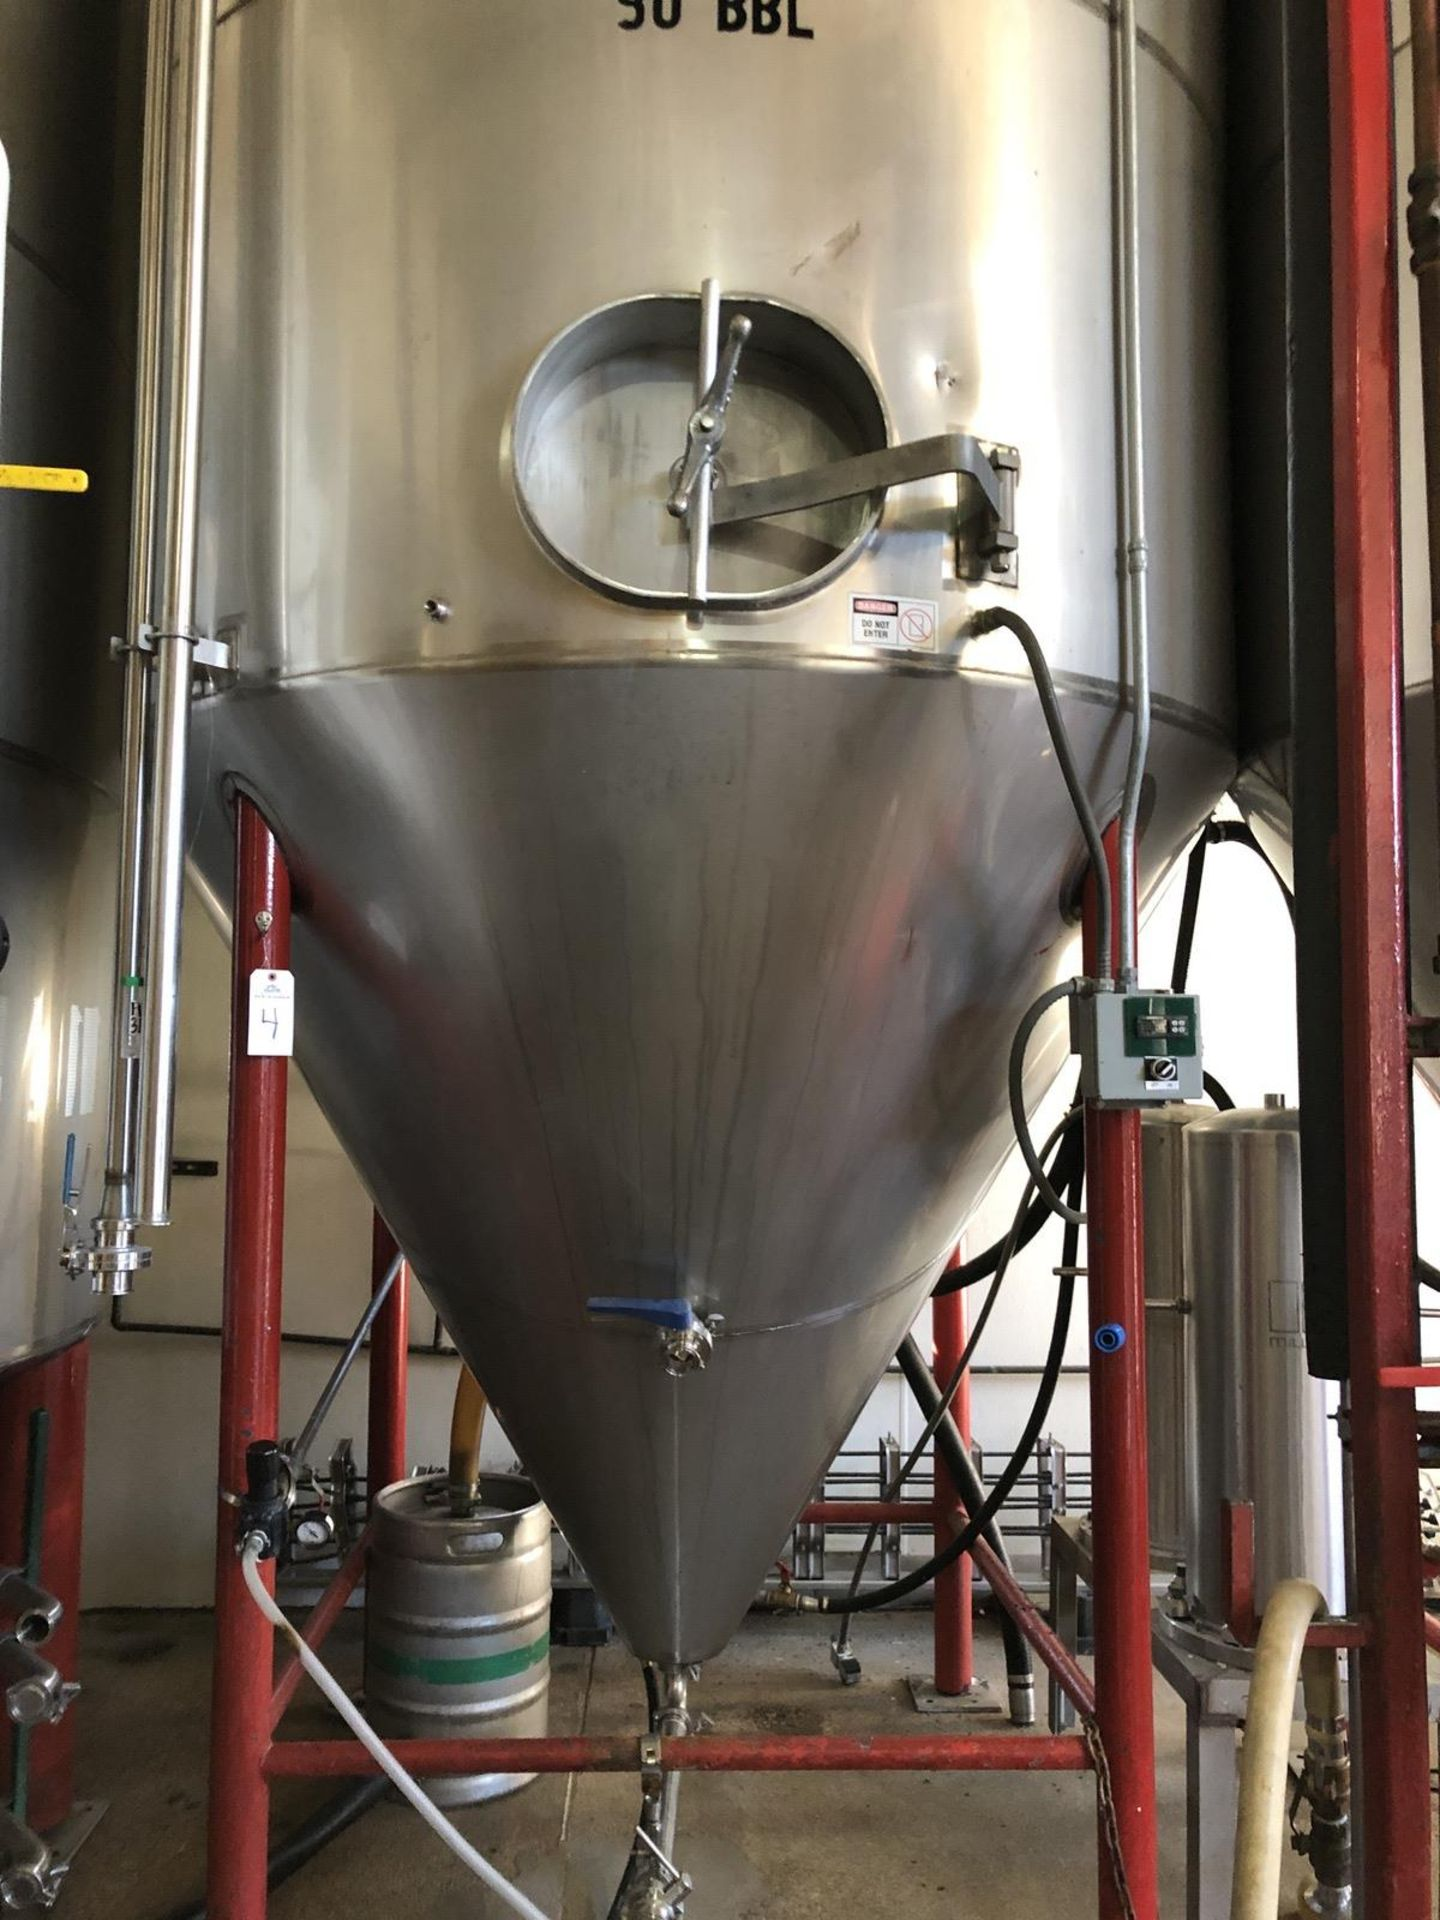 Lot 4 - Santa Rosa 90 BBL Fermenter, Cone Bottom, Glycol Jacketed, Stainless Steel, Approx | Rig Fee: $2500